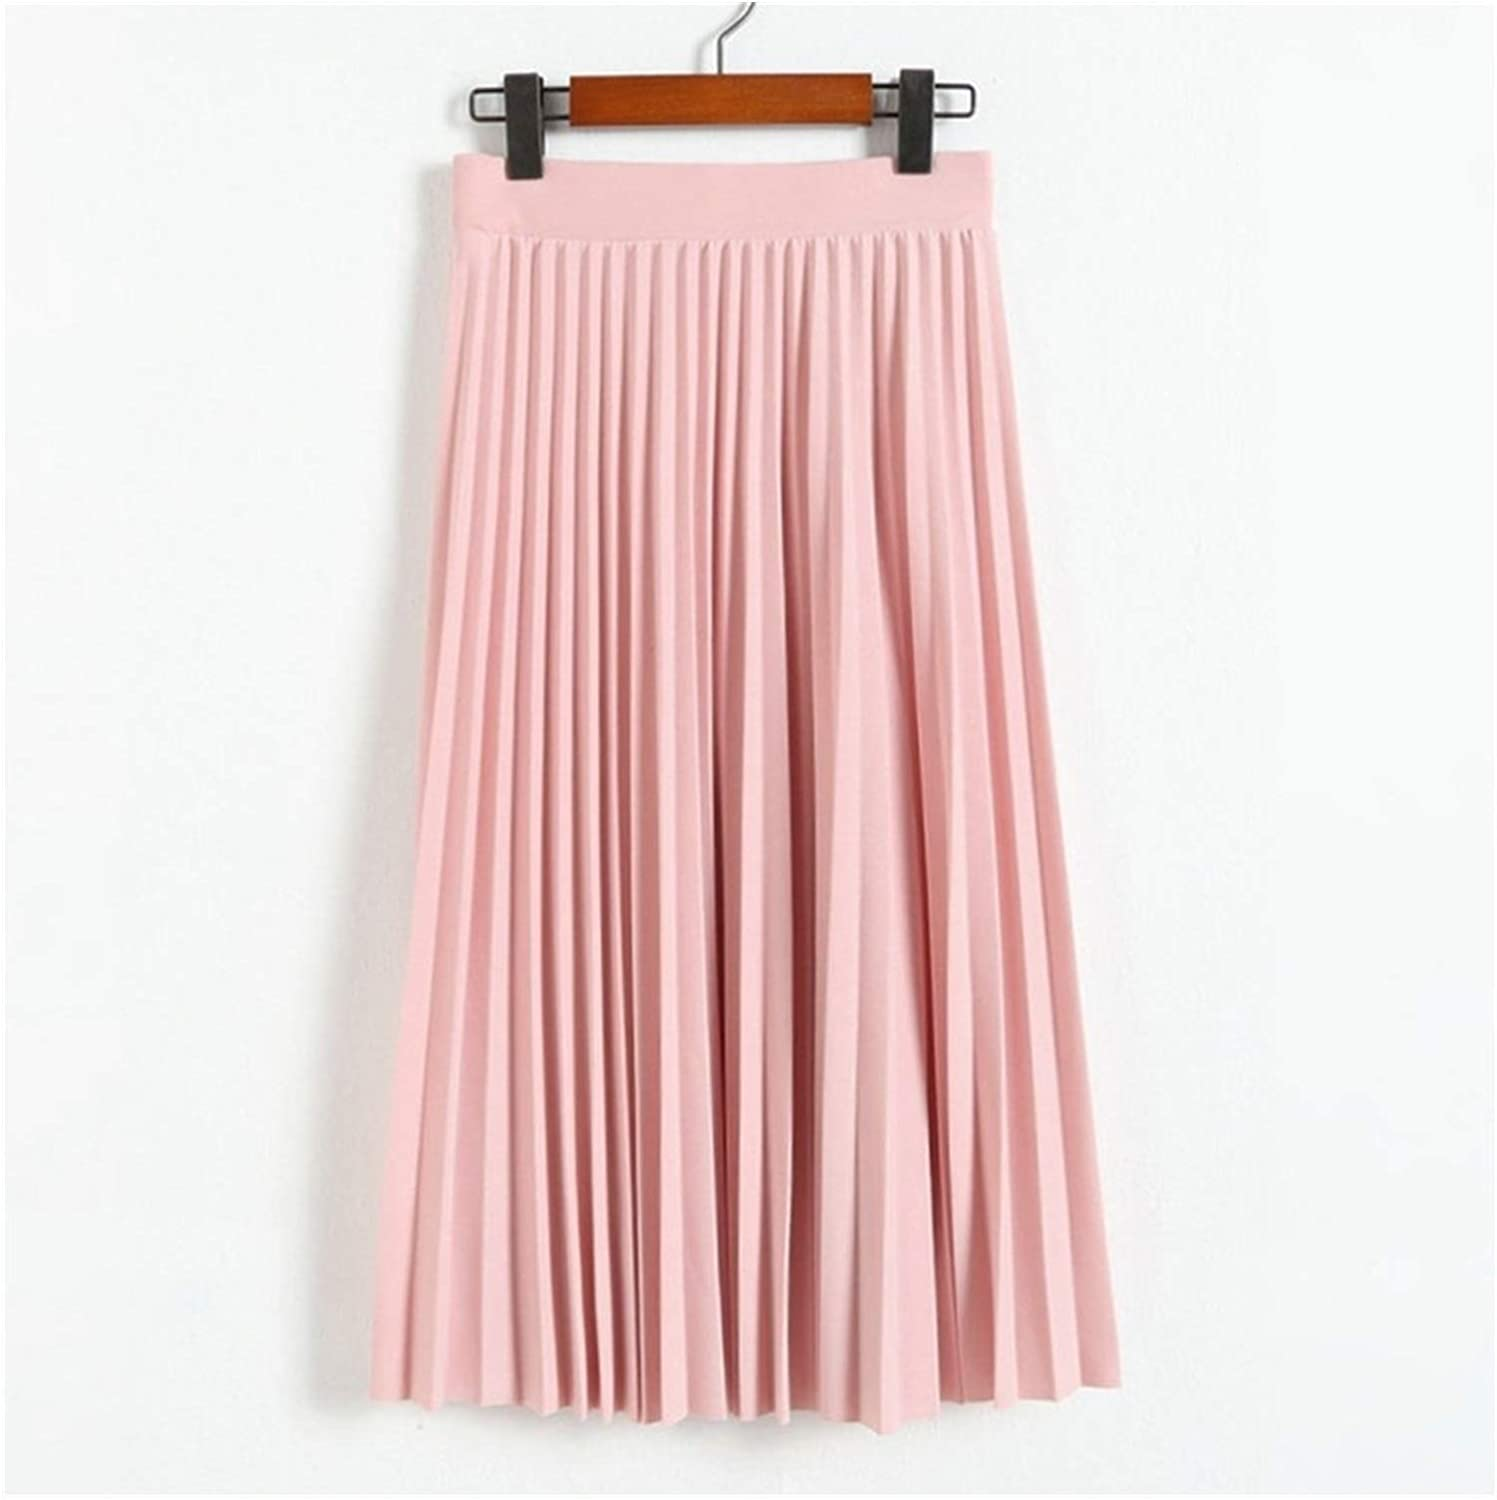 Spring and Autumn Women's High Waist Pleated Solid Color Half Length Elastic Skirt Lady Black Pink (Color : Pink, Size : One Size)